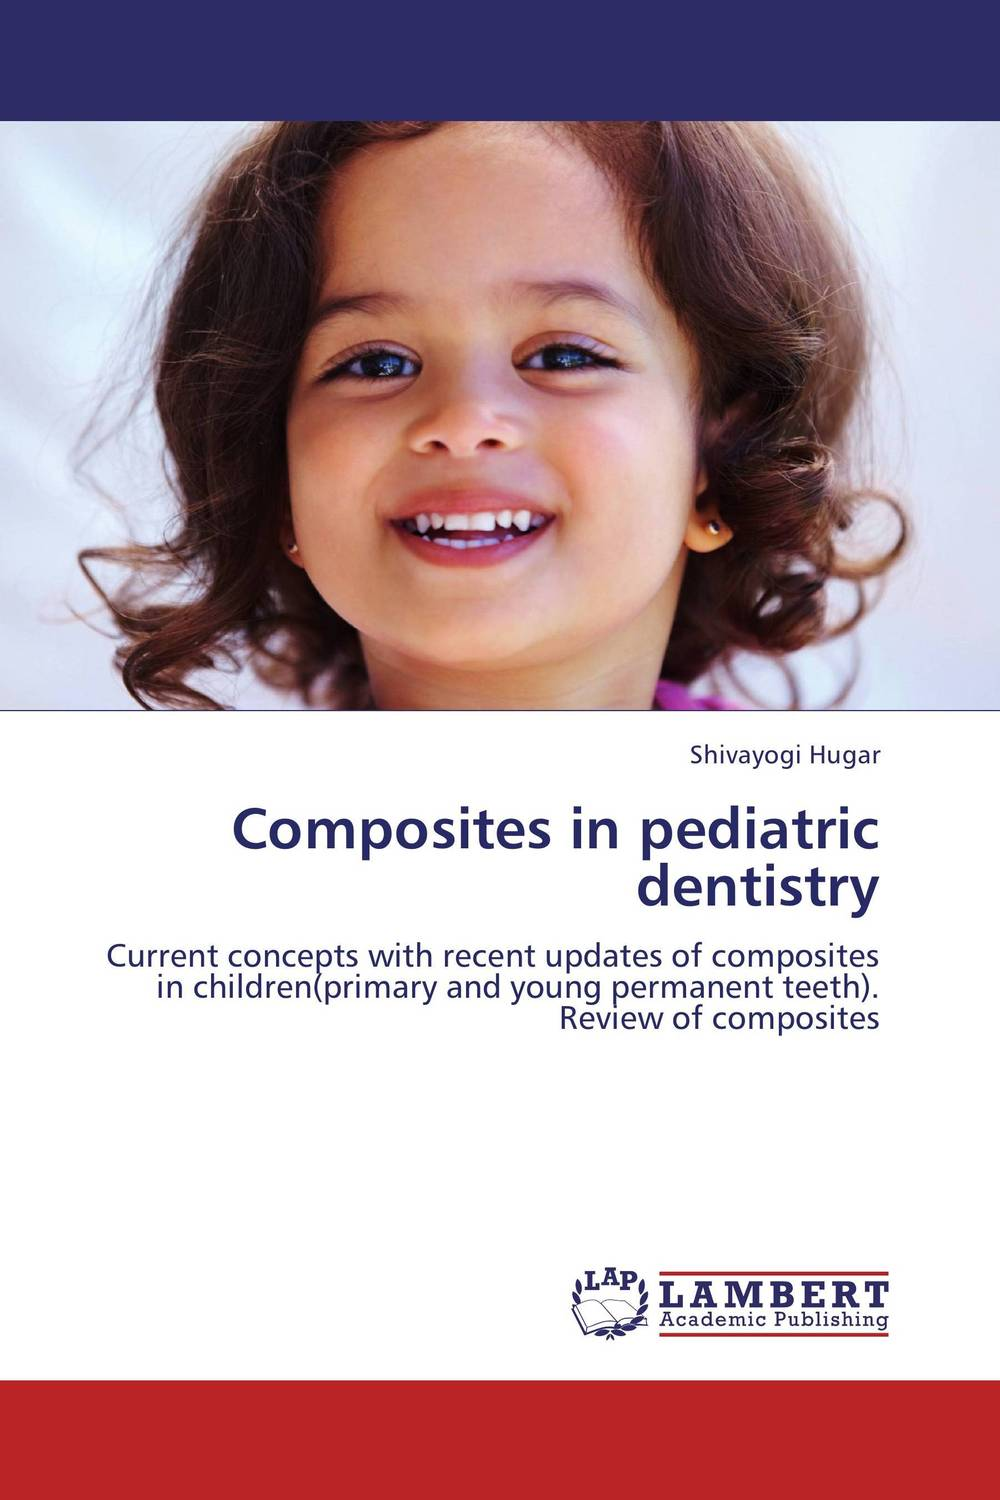 Composites in pediatric dentistry karanprakash singh ramanpreet kaur bhullar and sumit kochhar forensic dentistry teeth and their secrets